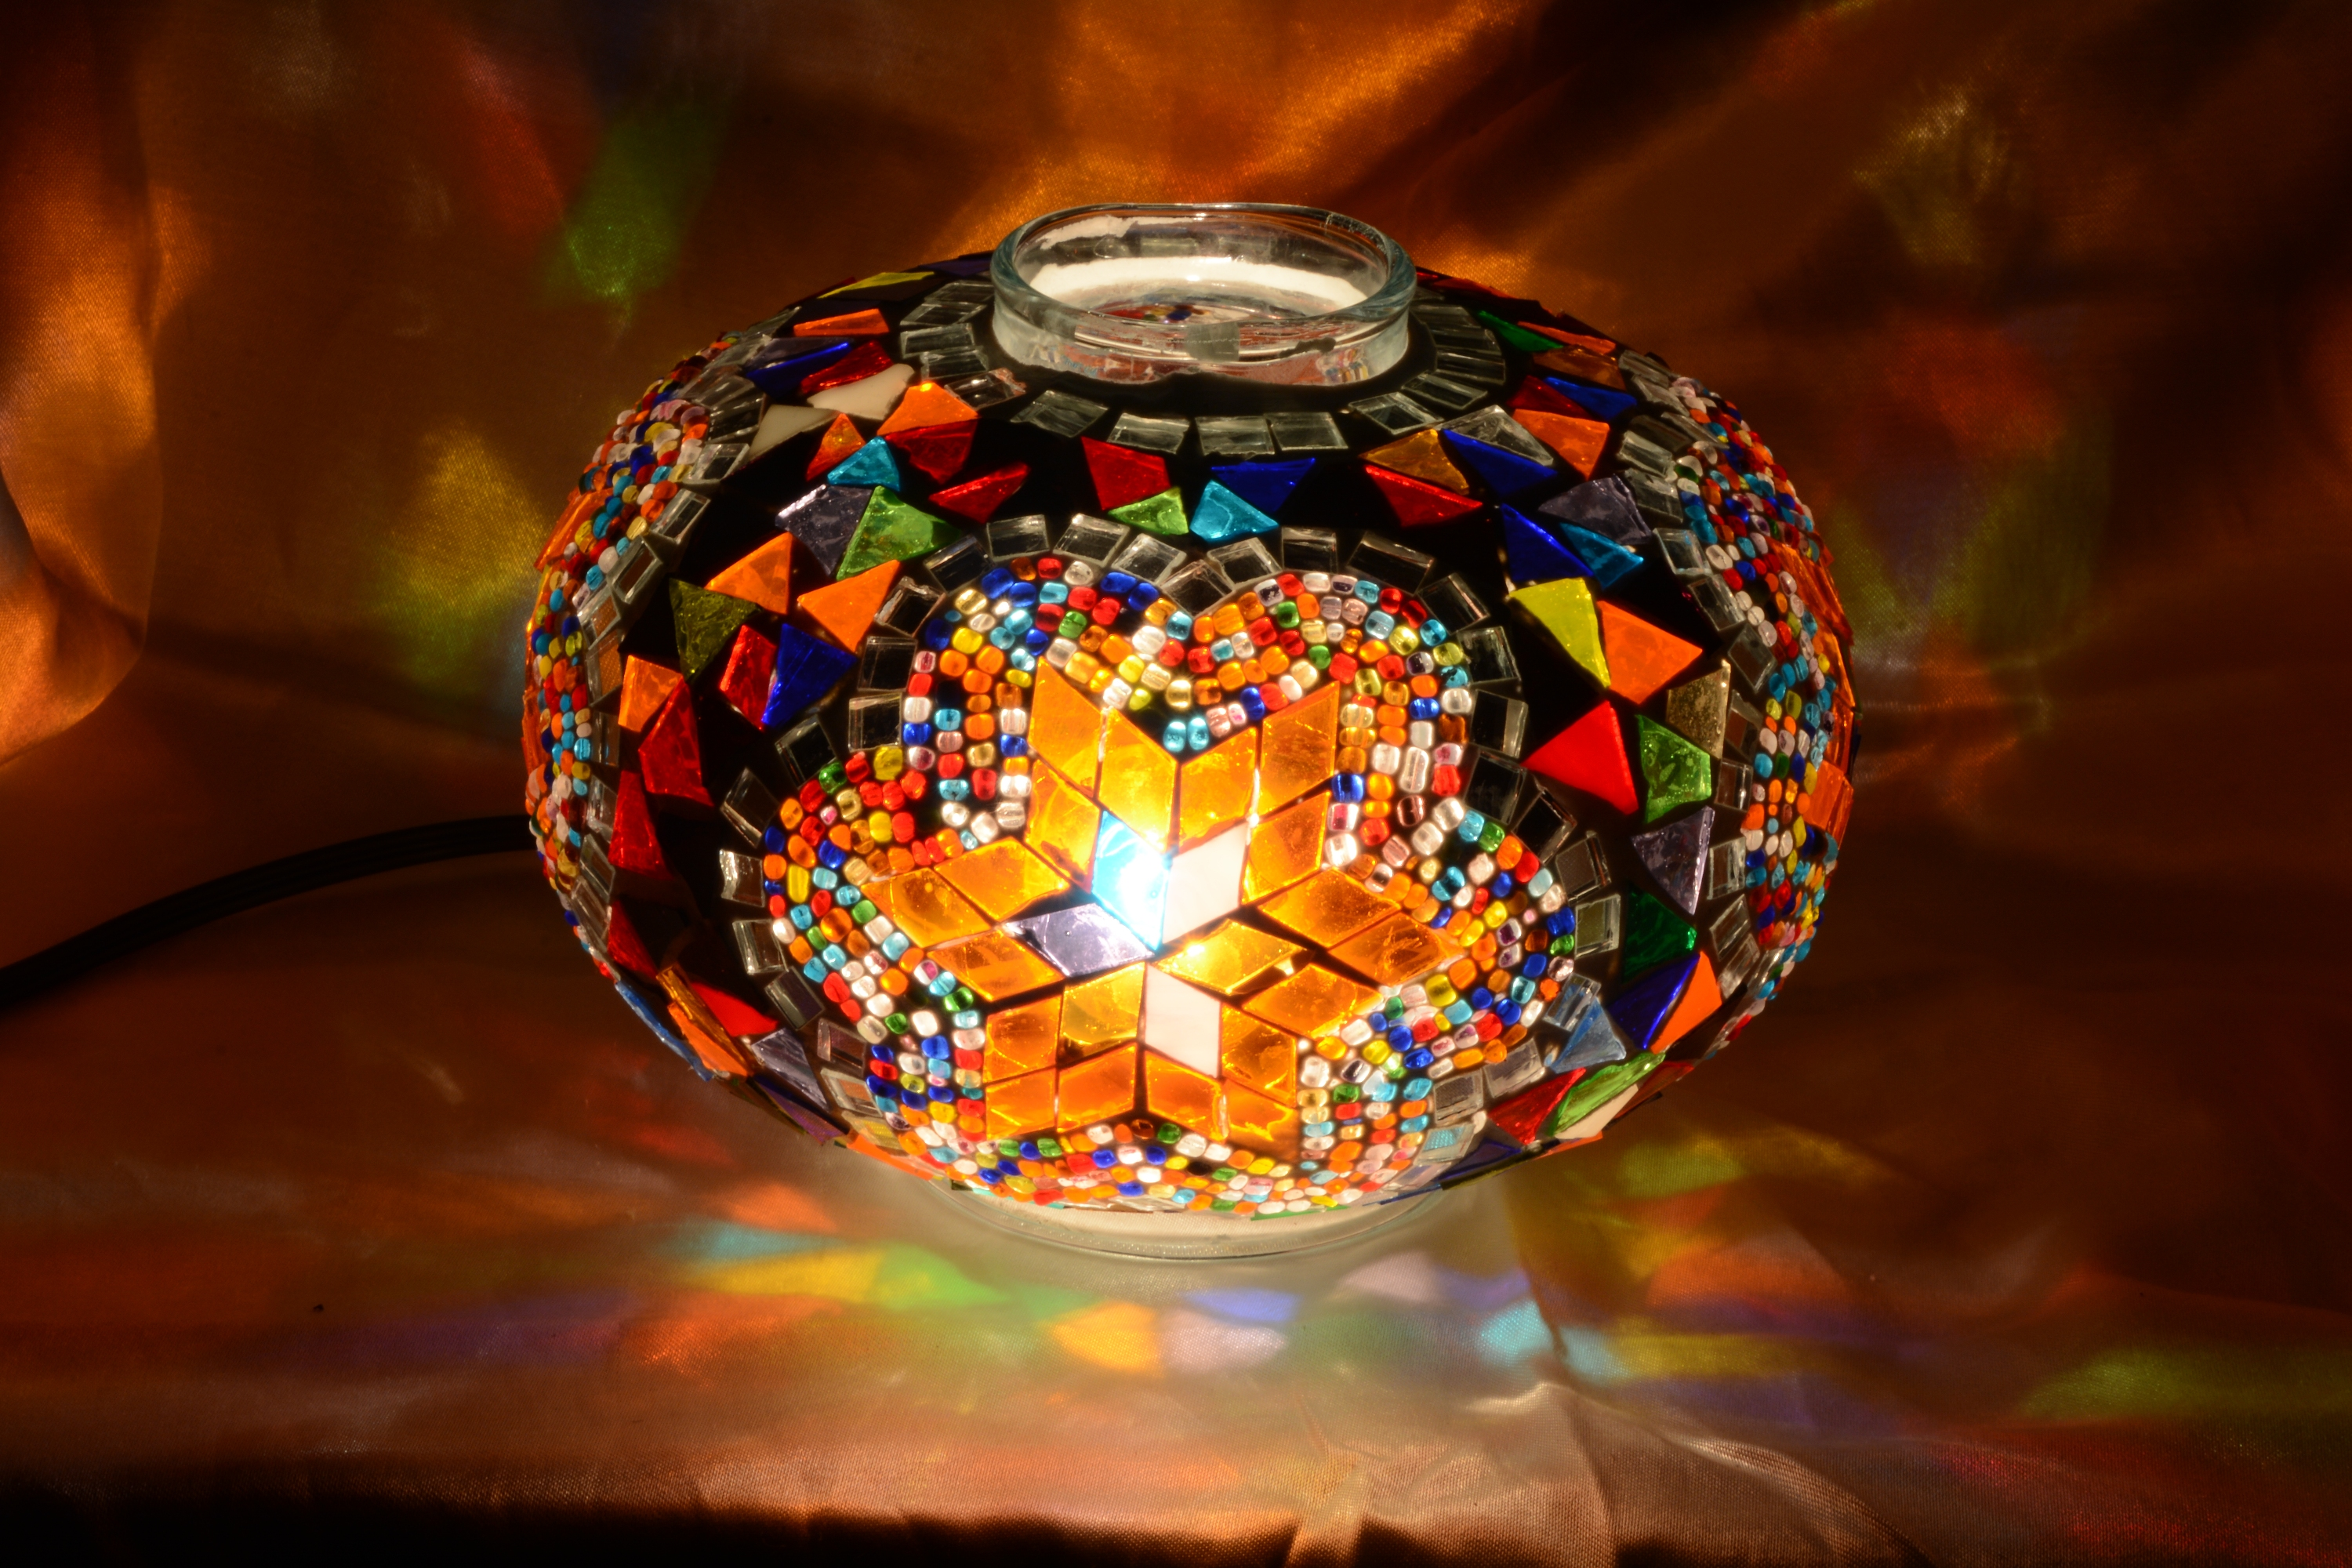 Size 3 mosaic glass model lamp